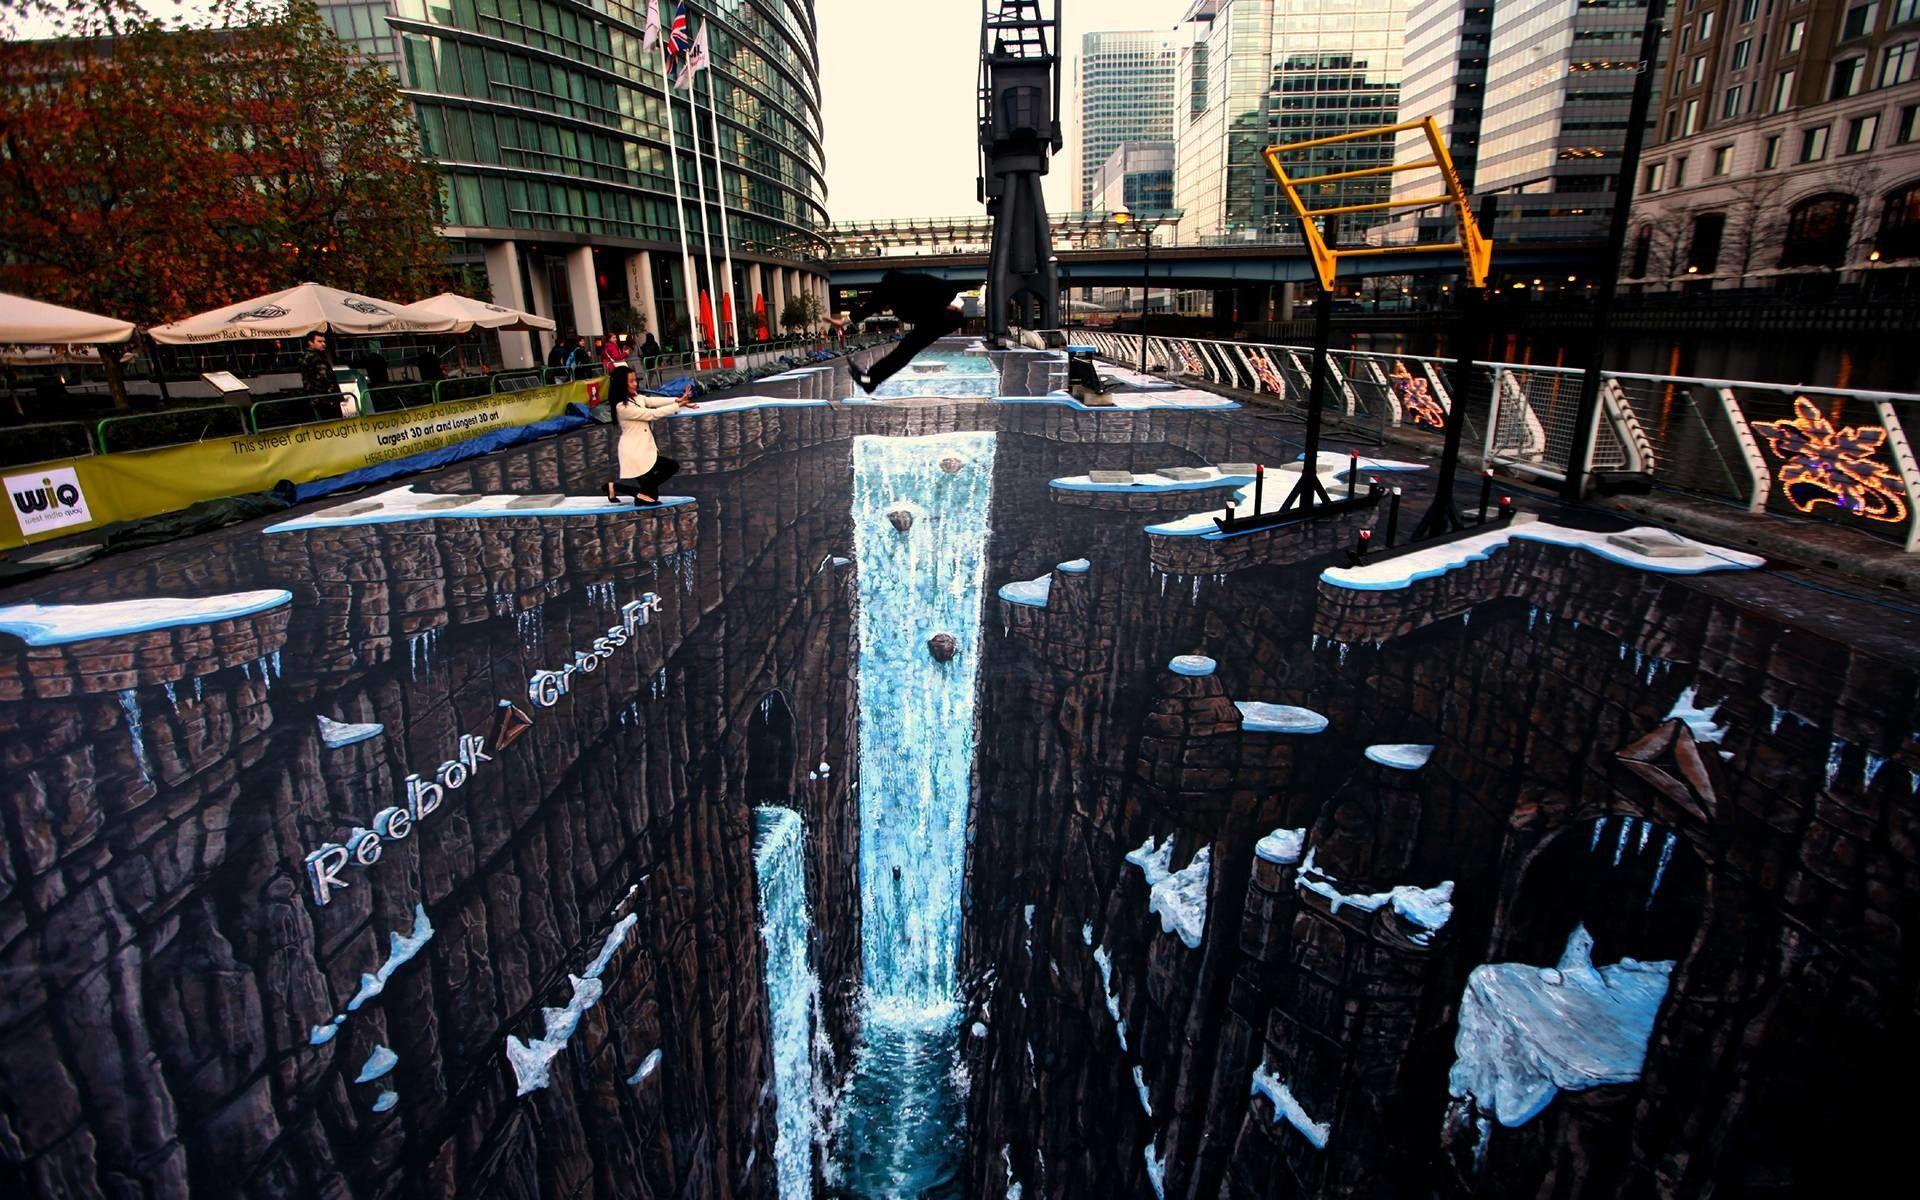 urban art pictures hd free